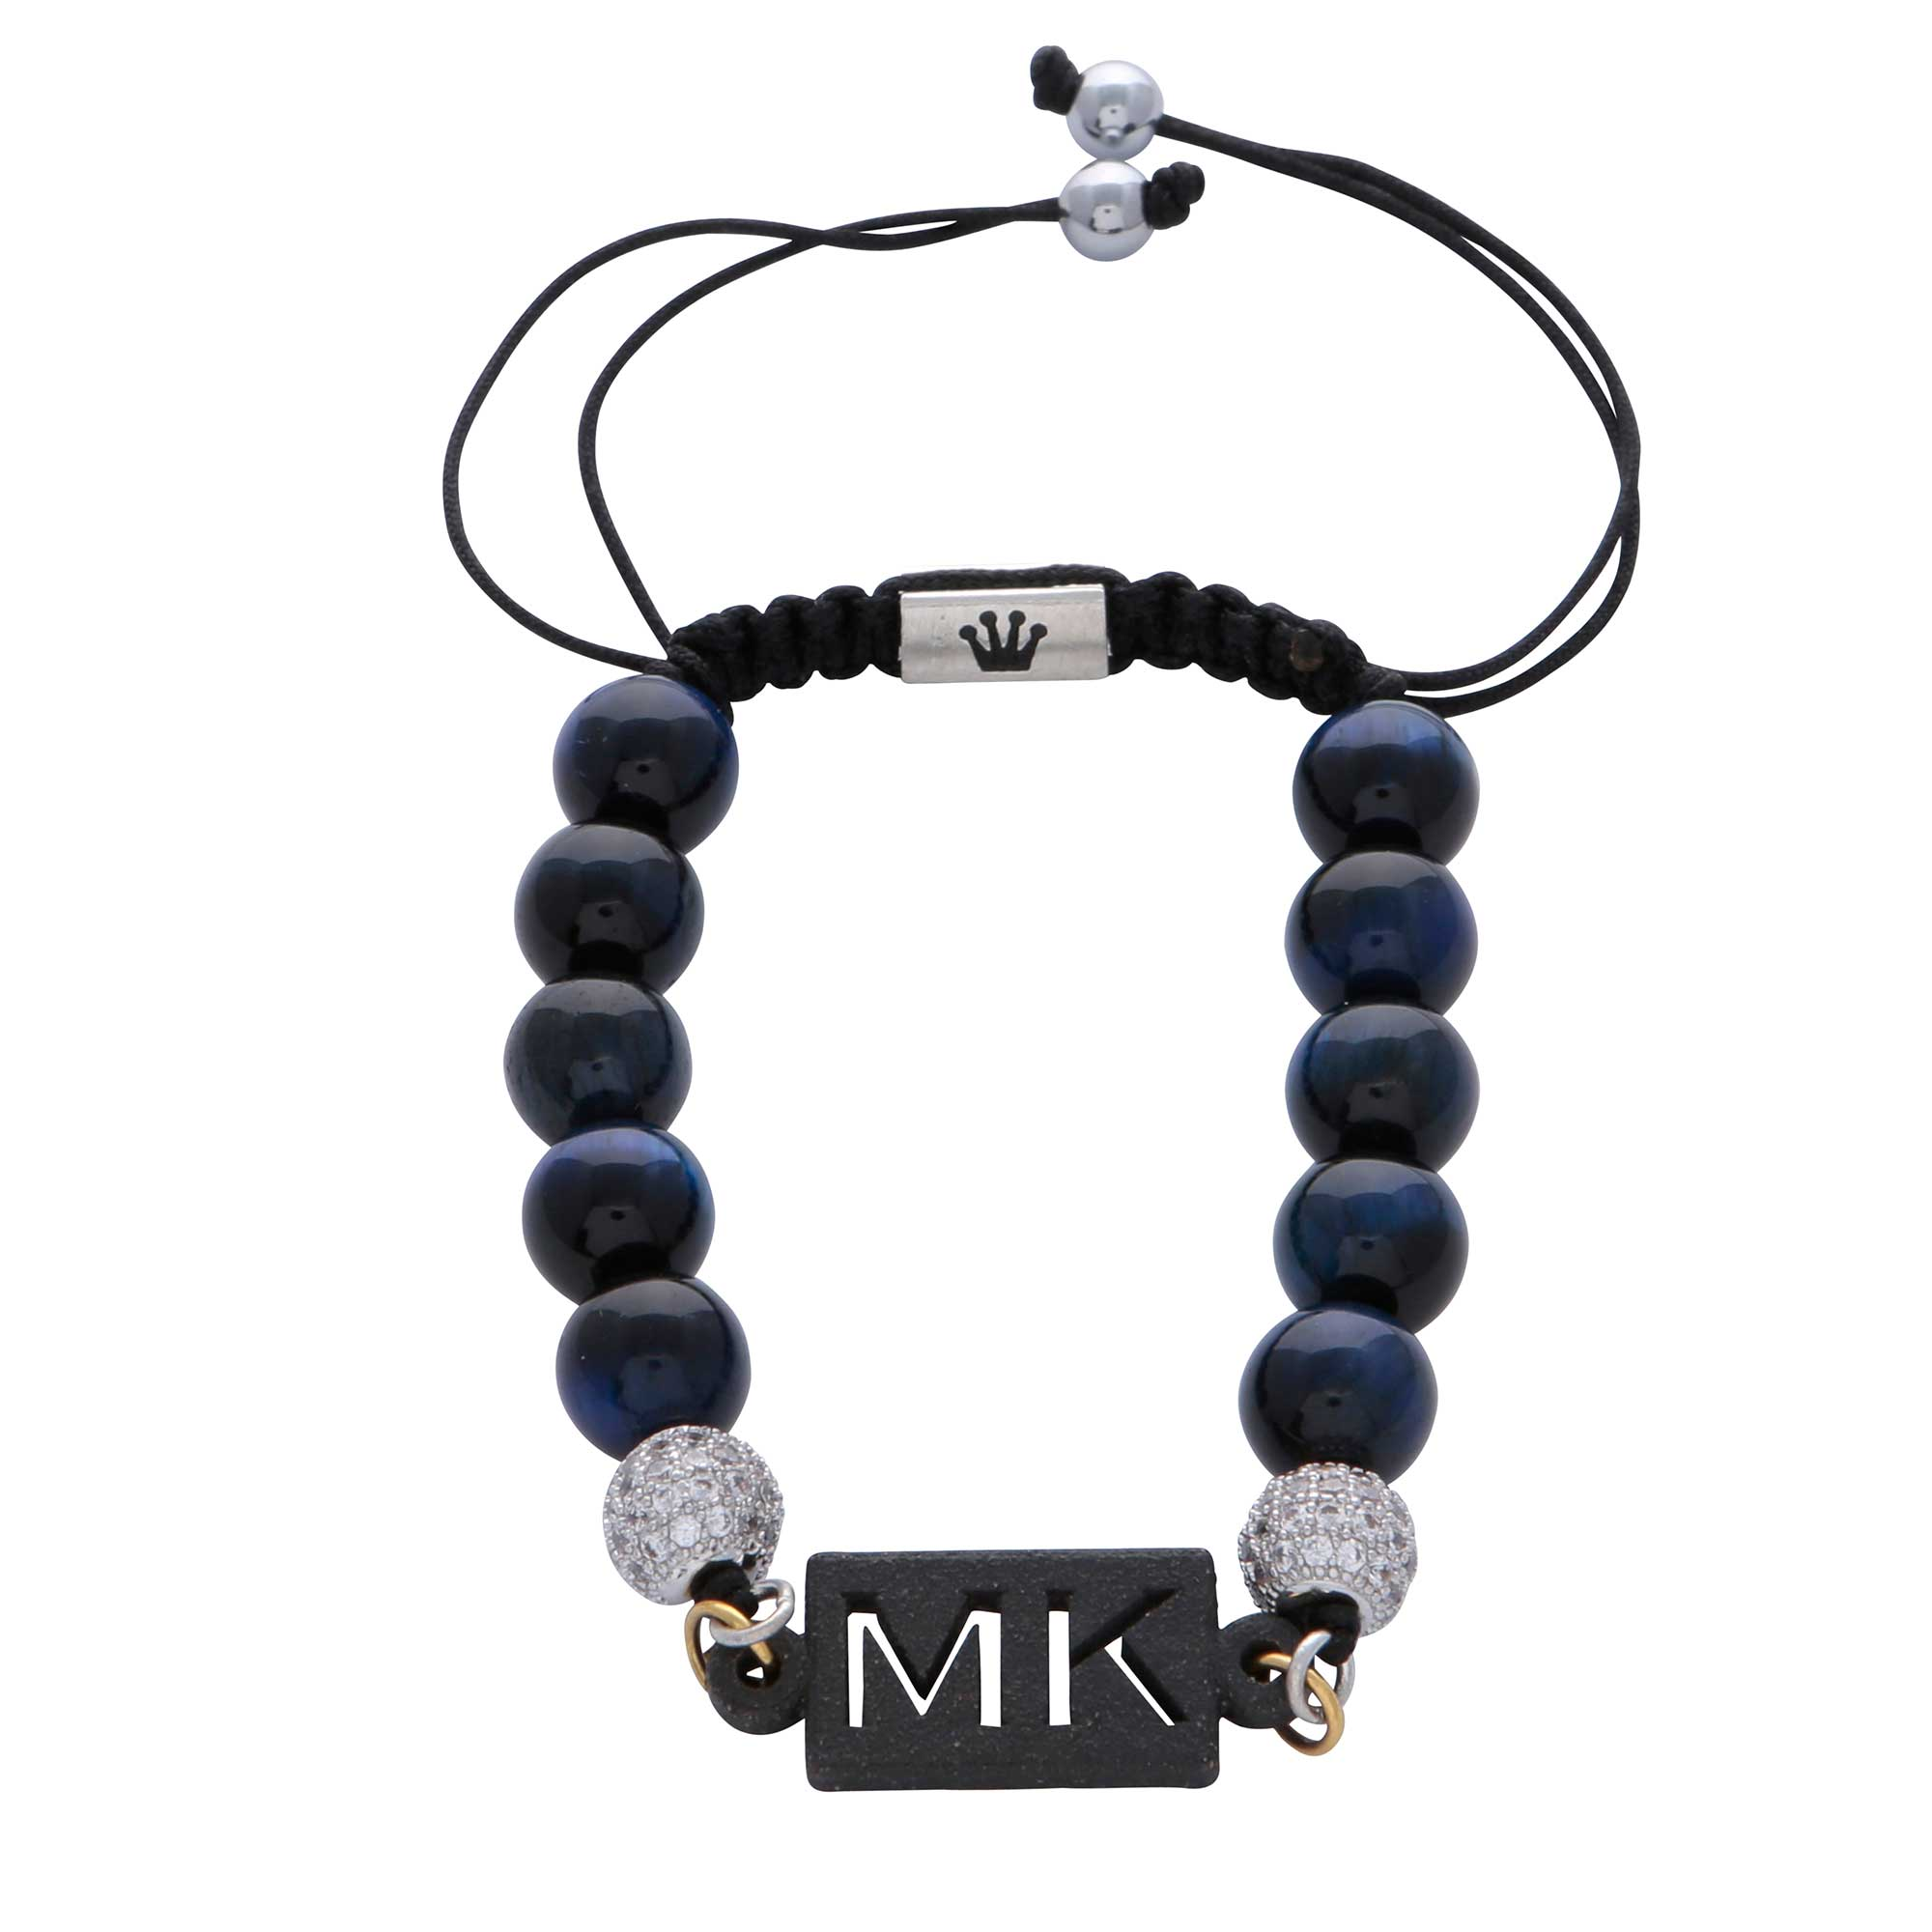 handmade image bracelet expression manipura amsterdam gemstone collection in male men collections mala